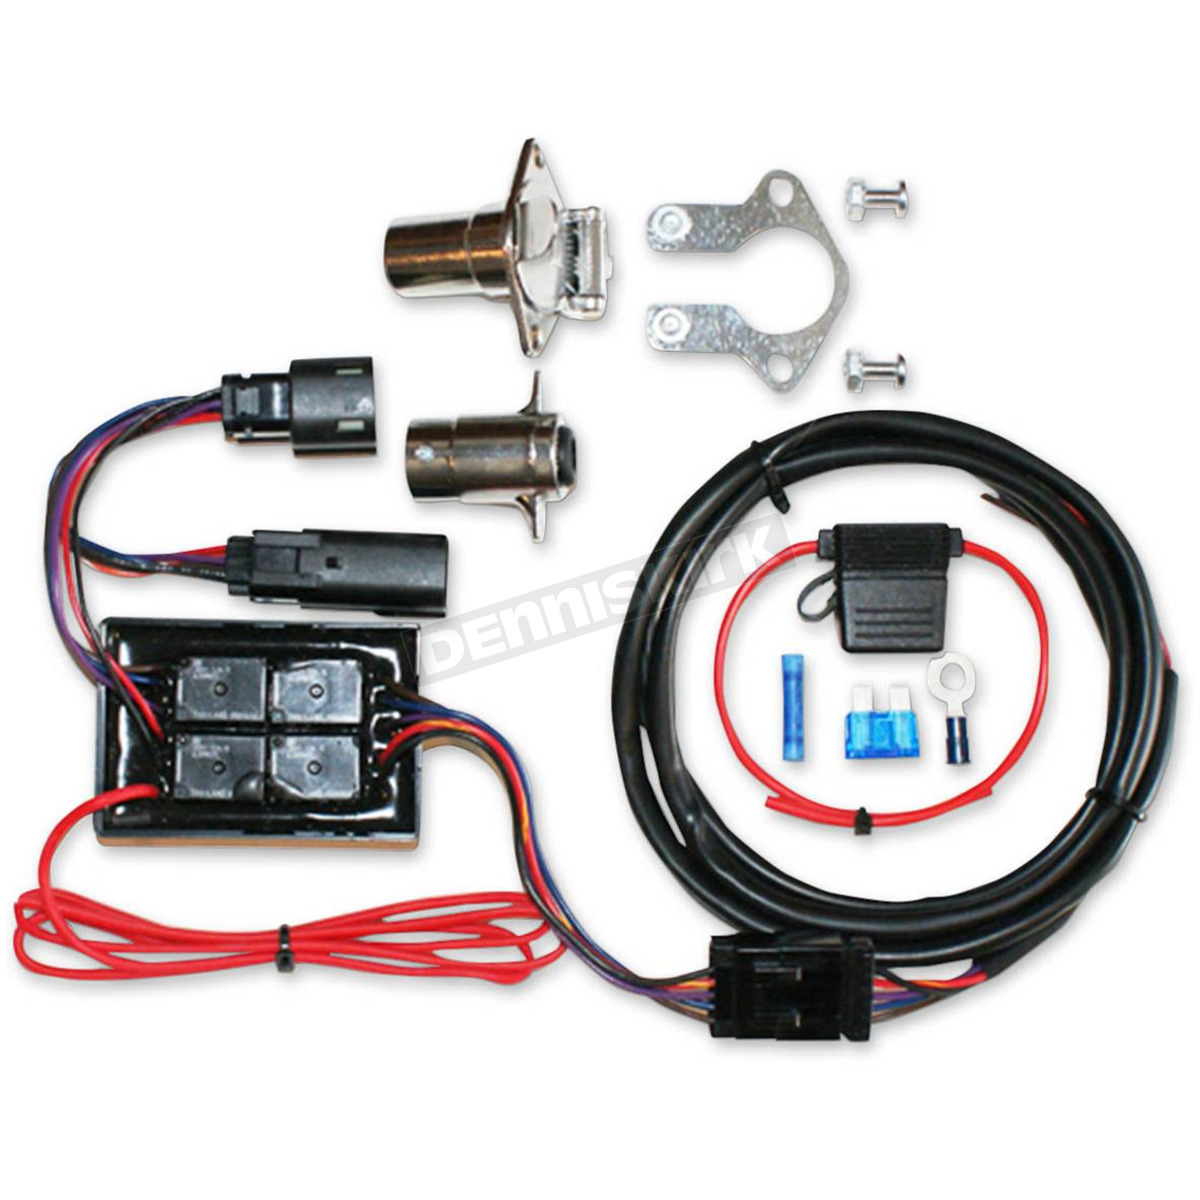 Harley Trailer Hitch Wiring Harness Trusted Diagrams For Pontoon Davidson Diagram Fuse Box U2022 Jumper